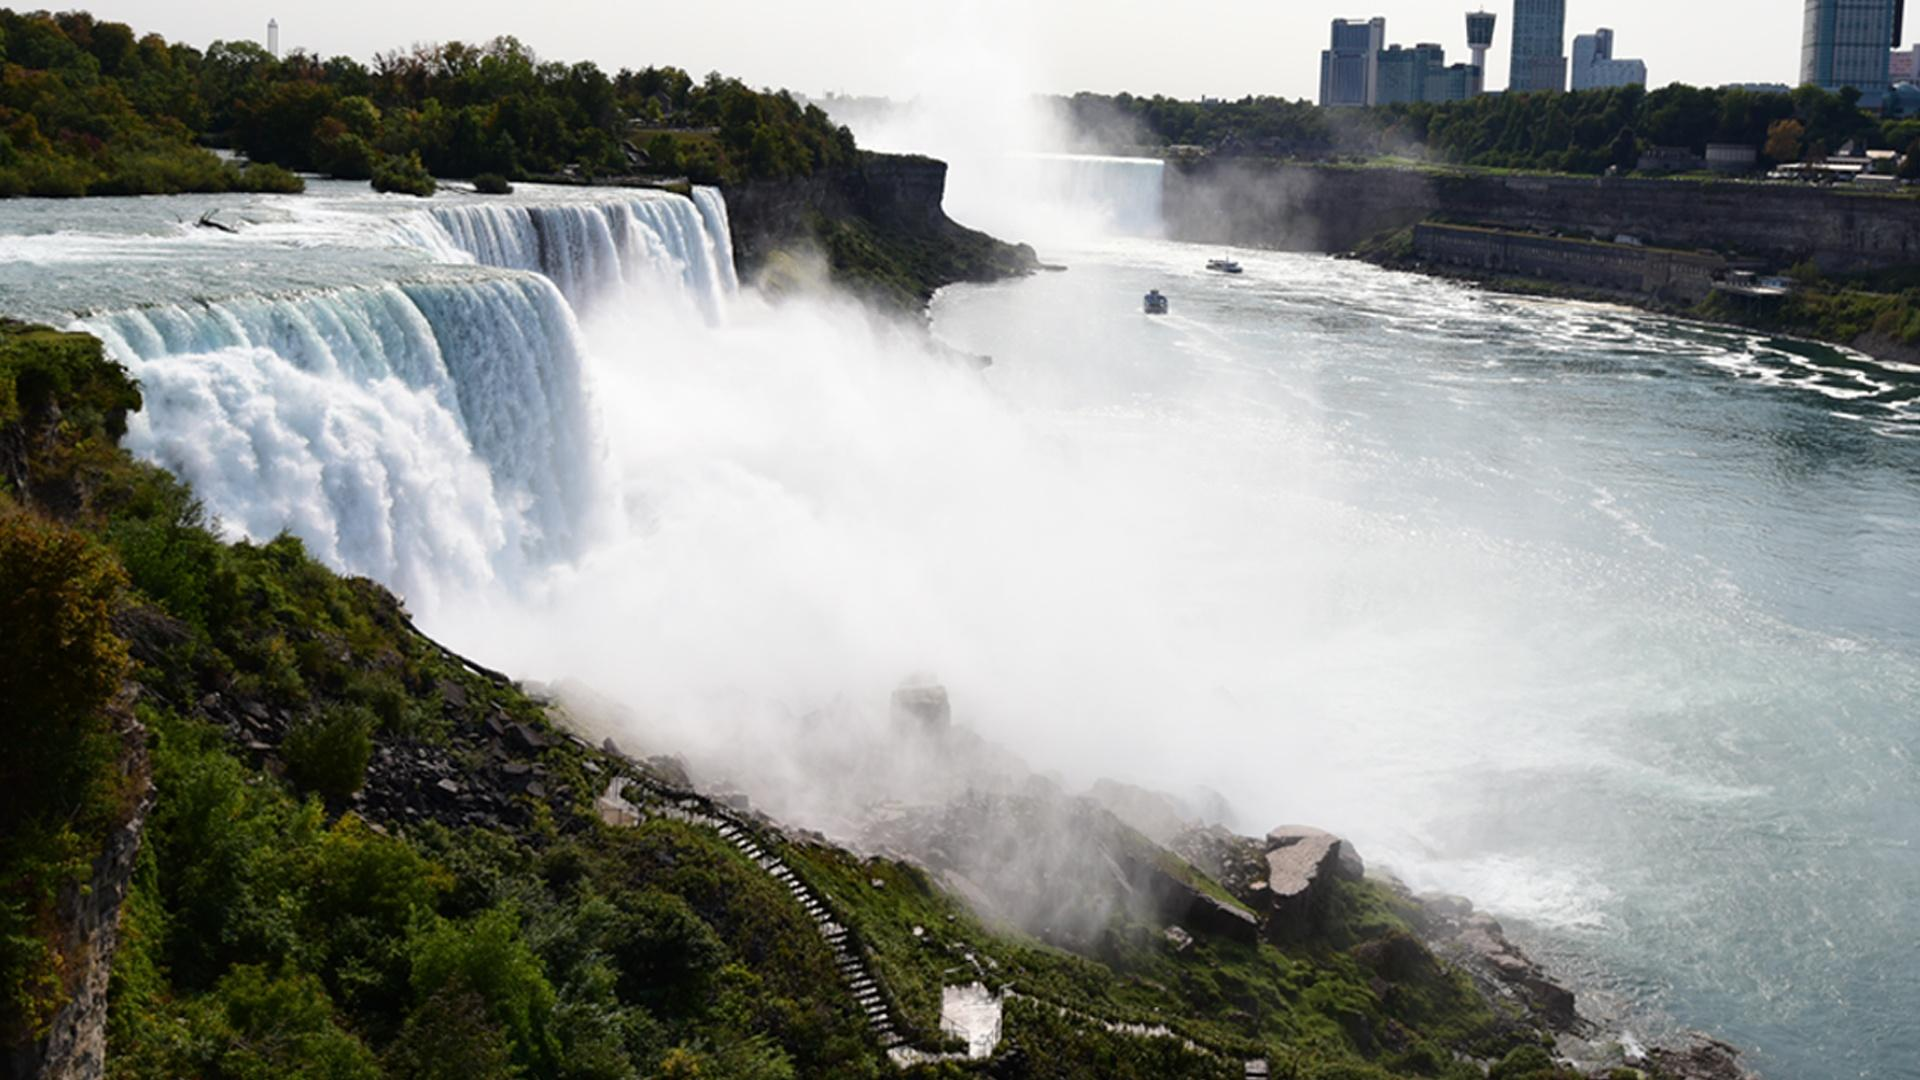 The Fury of the Falls